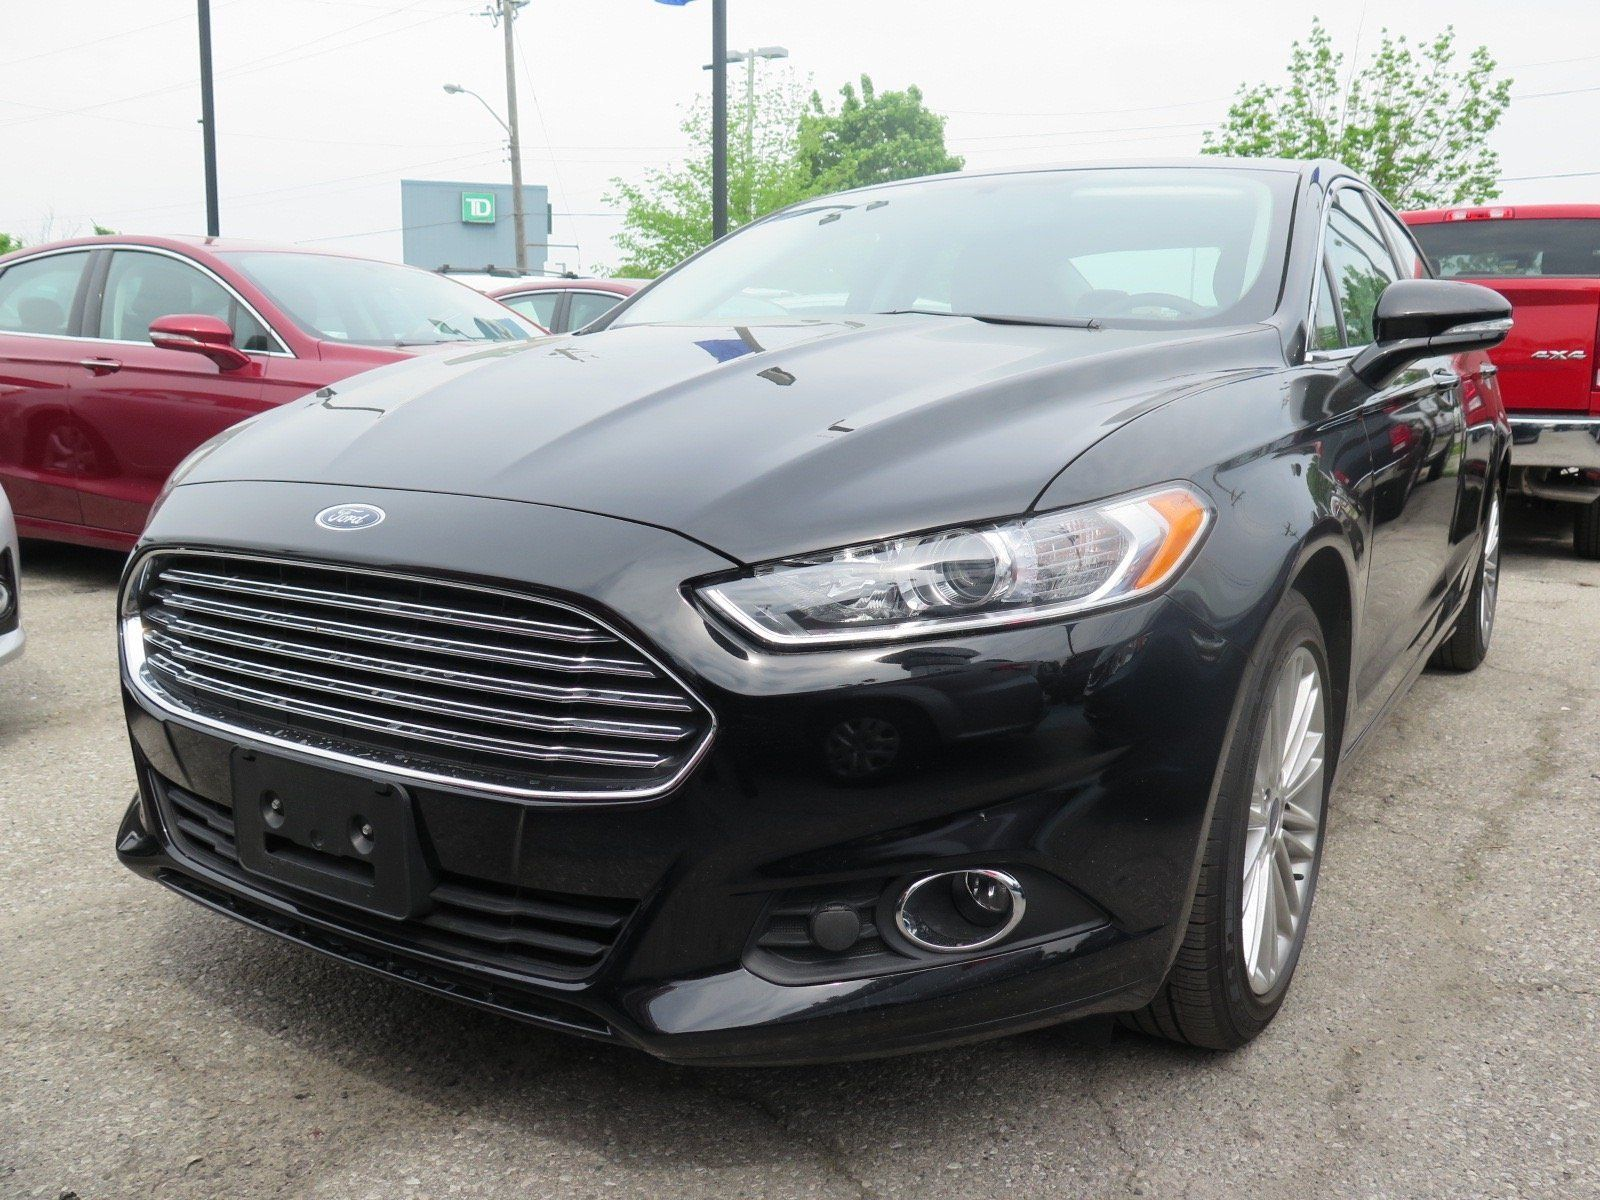 2016 ford fusion this tuxedo black fusion se comes loaded with voice activated navigation